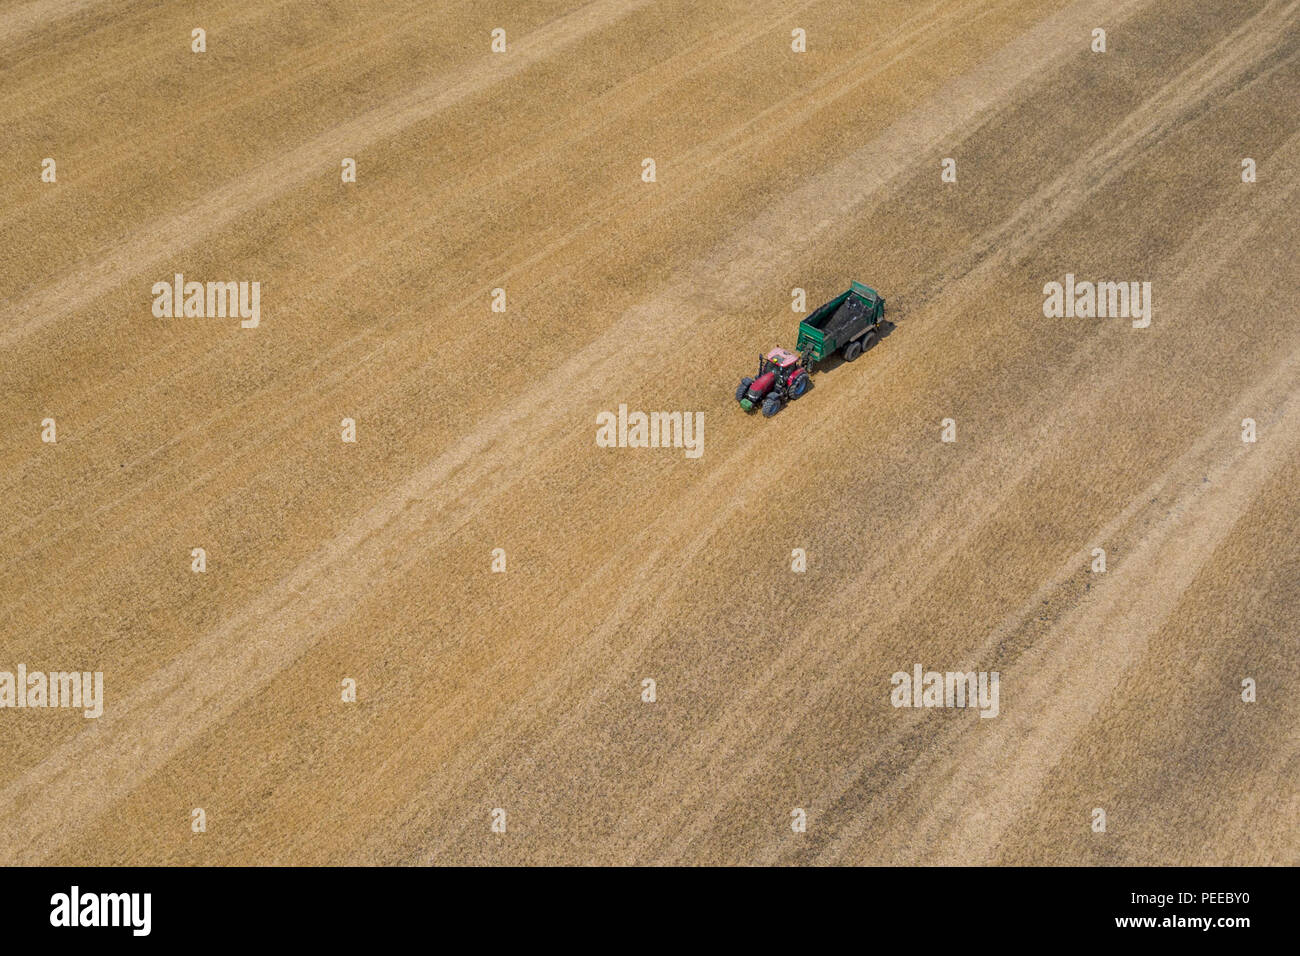 Aerial photos of tractors muck spreading during the summer harvest in Kent, UK - Stock Image